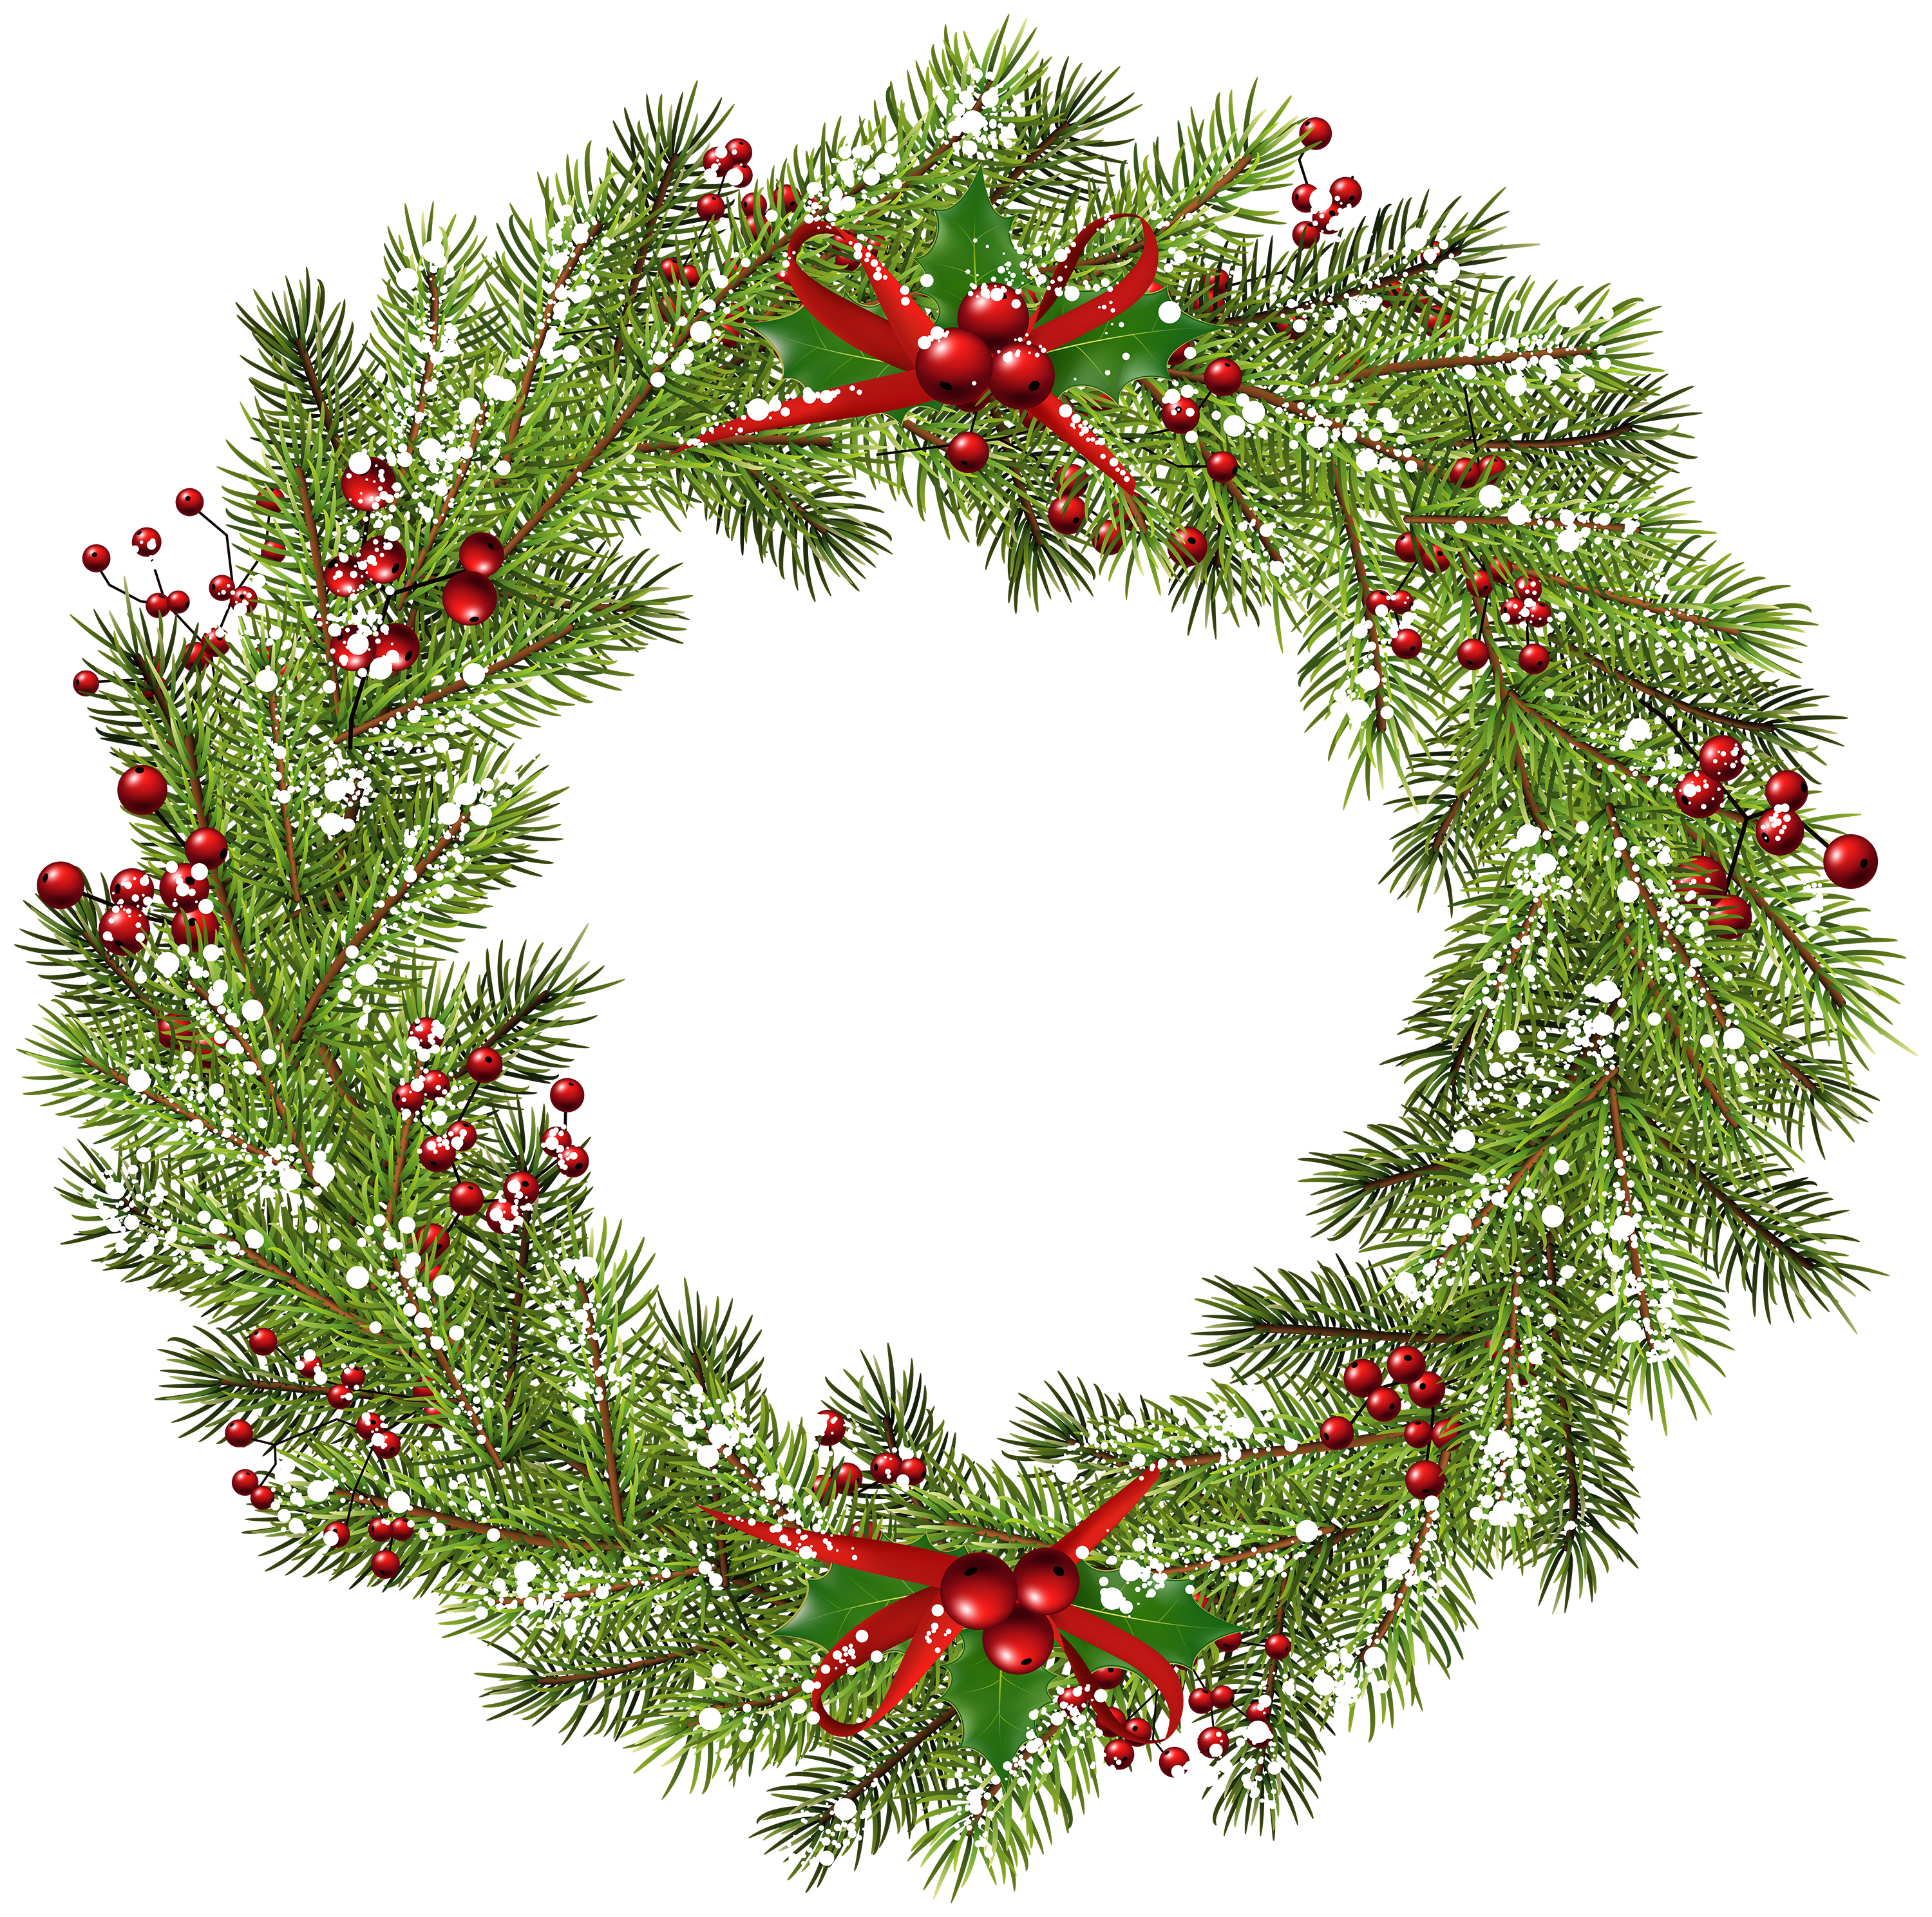 Christmas Wreath PNG Clip Art Image.